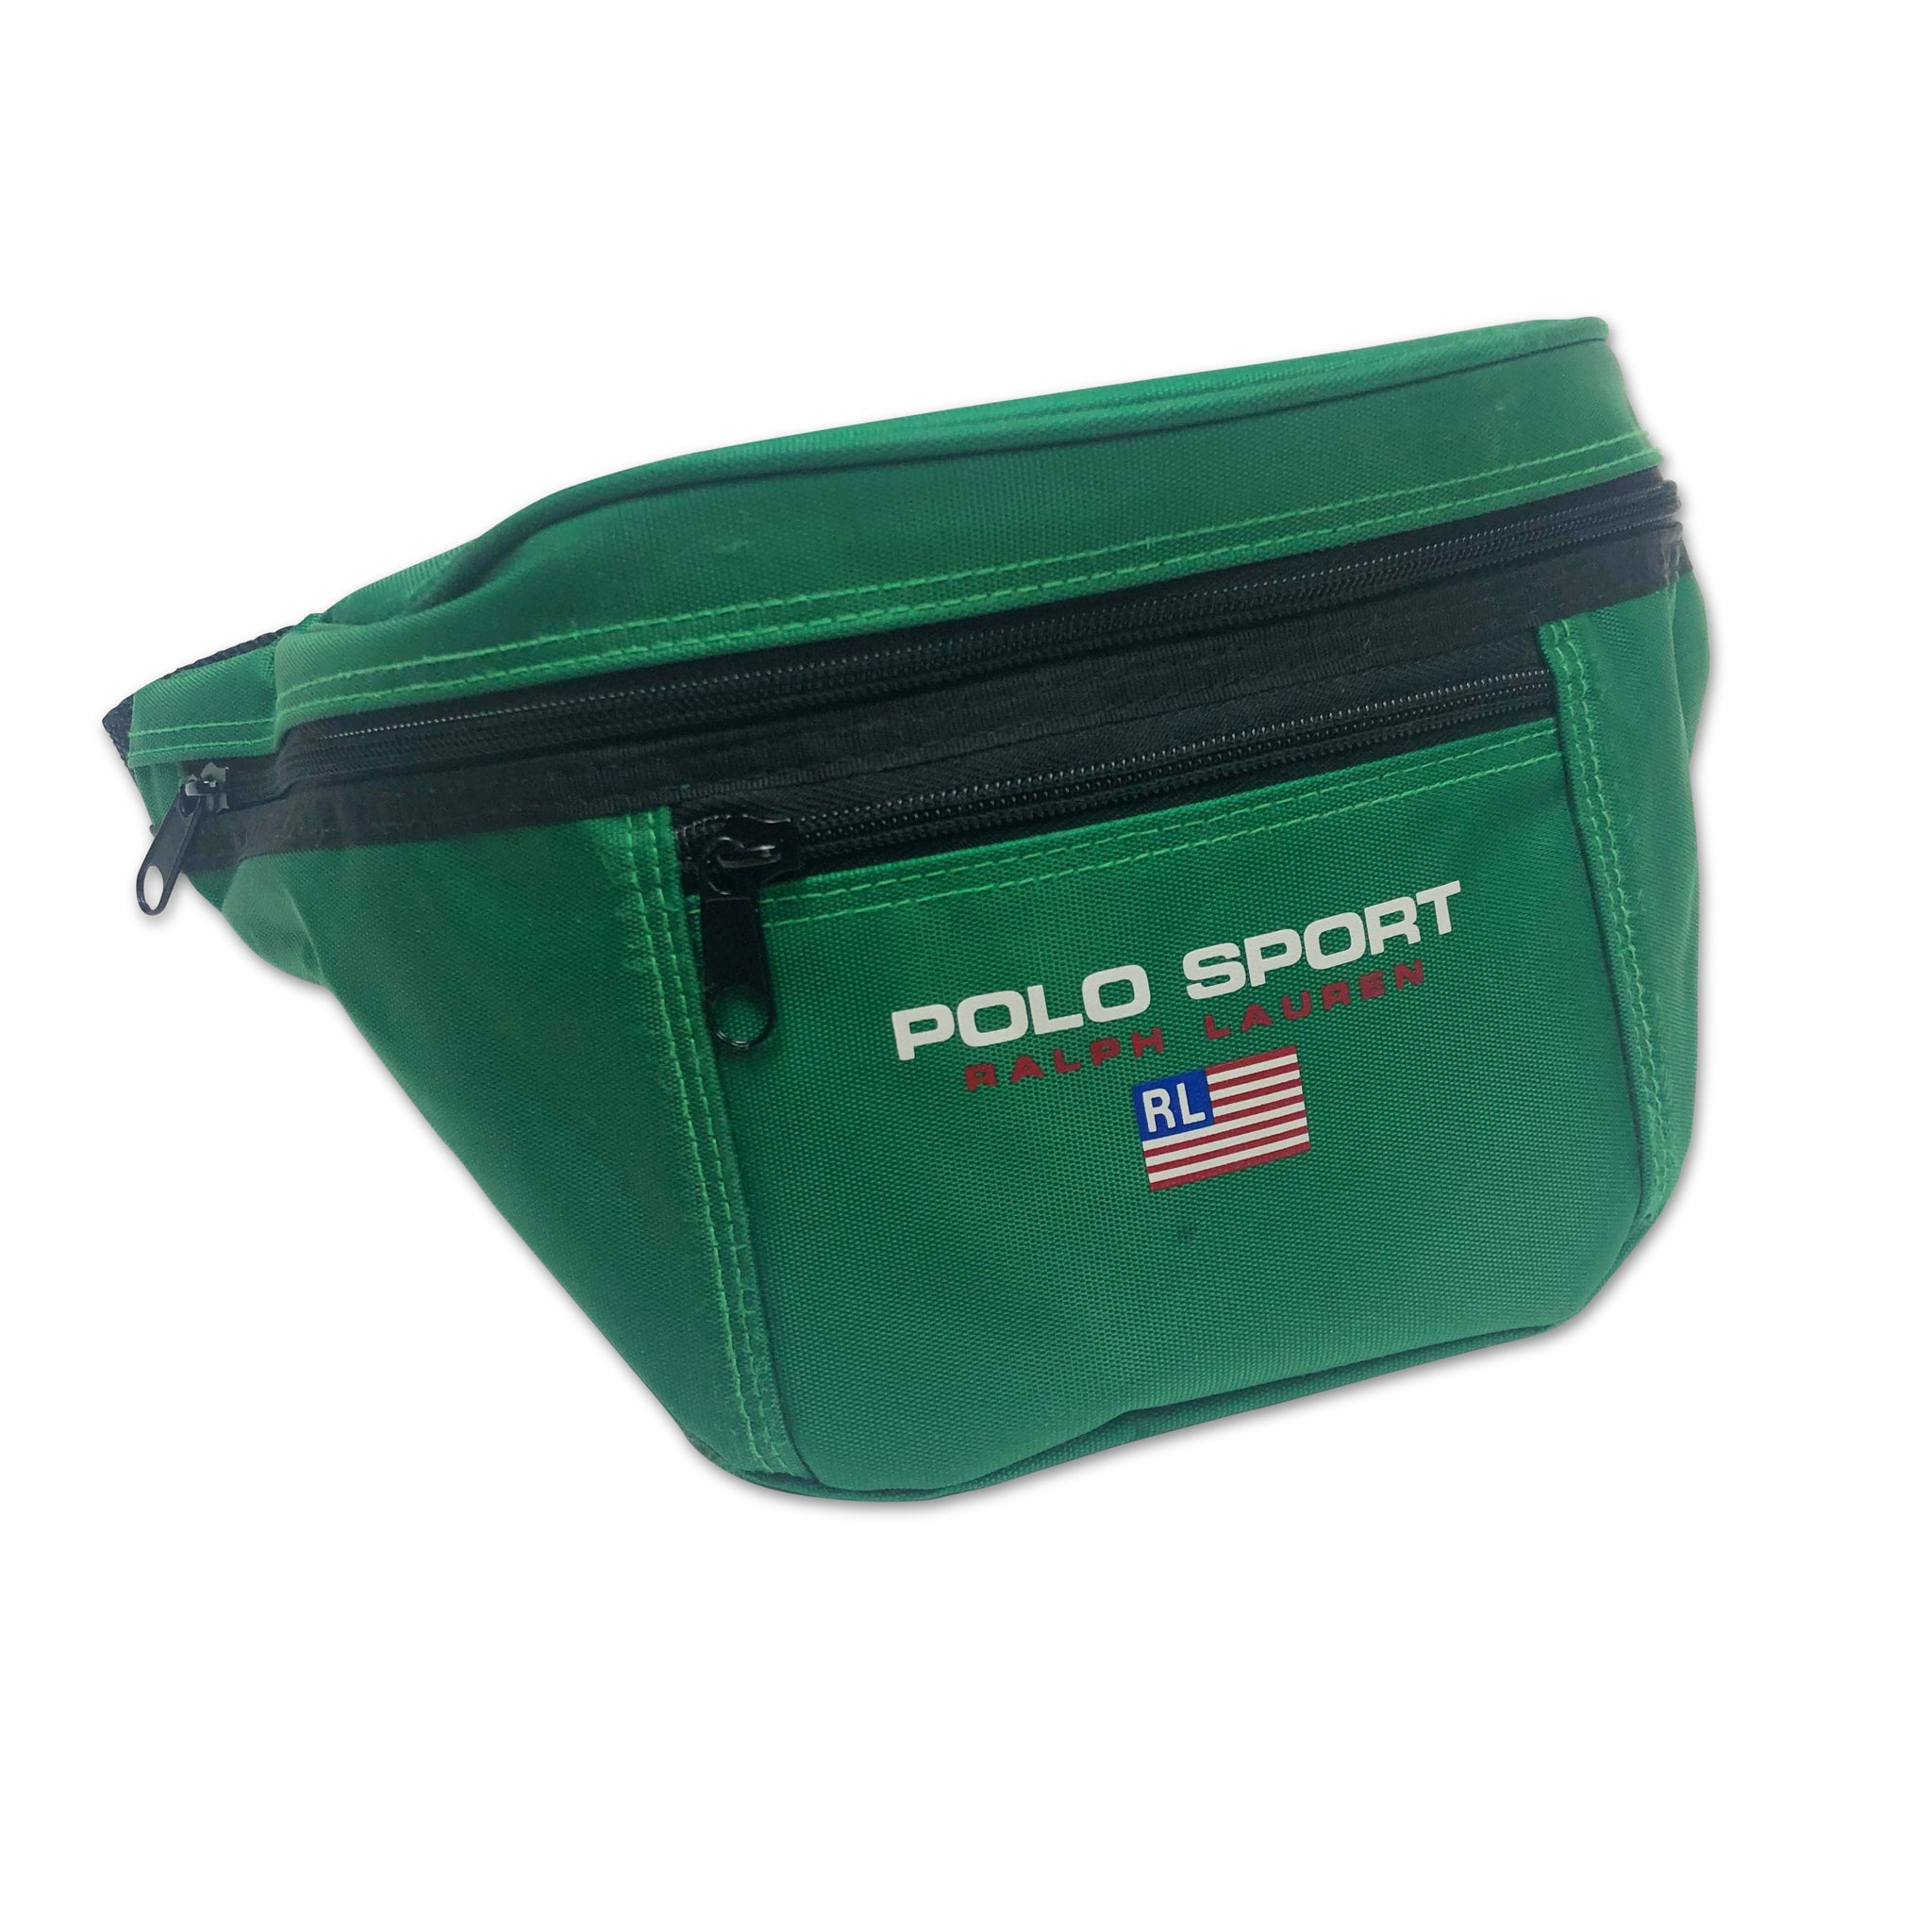 Vintage Polo Sport by Ralph Lauren Fanny Pack